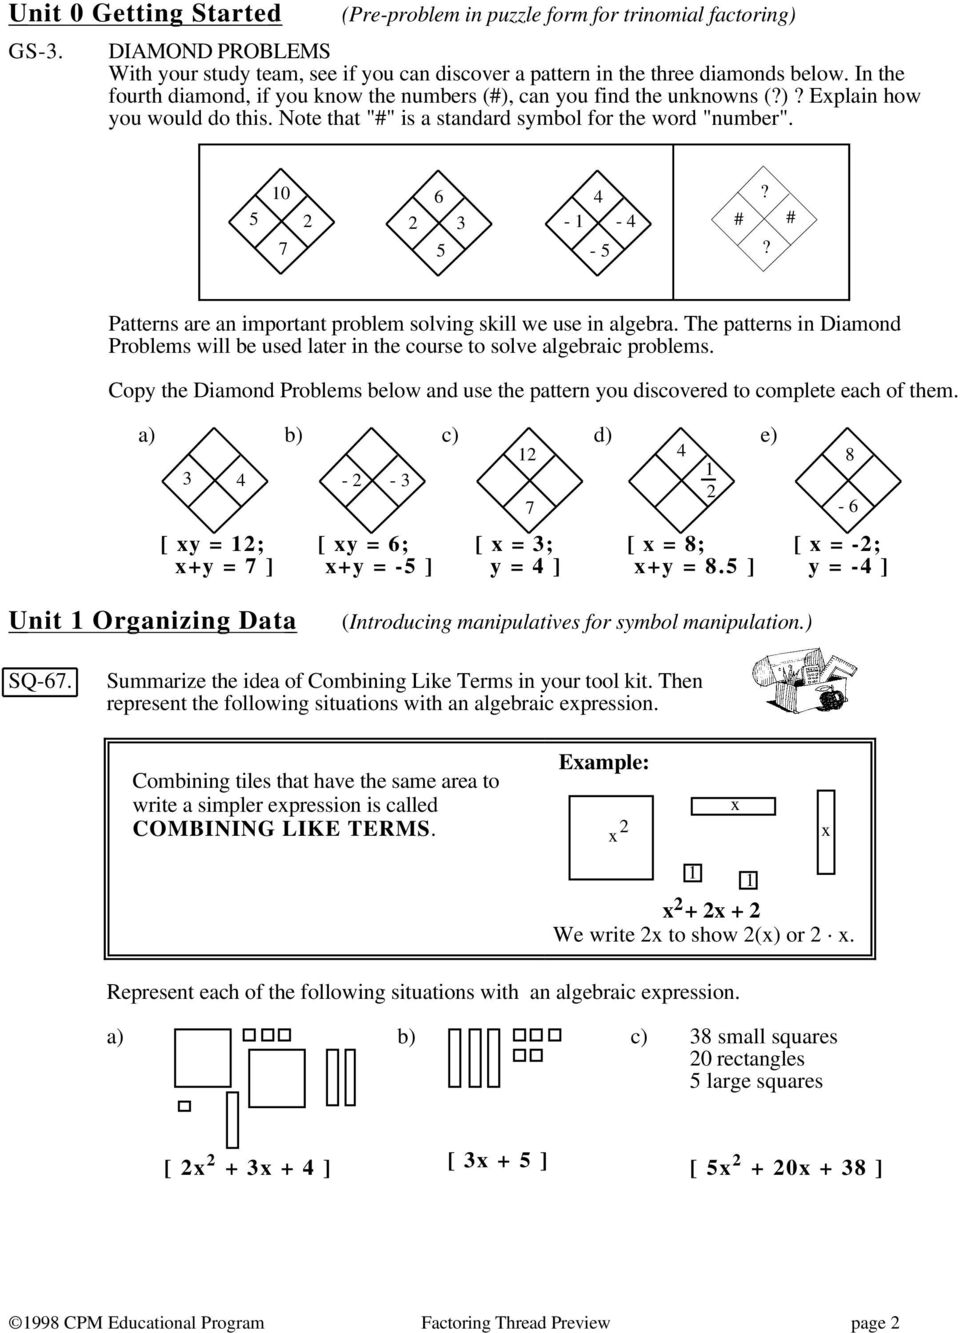 - - 4 # # - 5? Patterns are an important problem solving skill we use in algebra. The patterns in Diamond Problems will be used later in the course to solve algebraic problems.